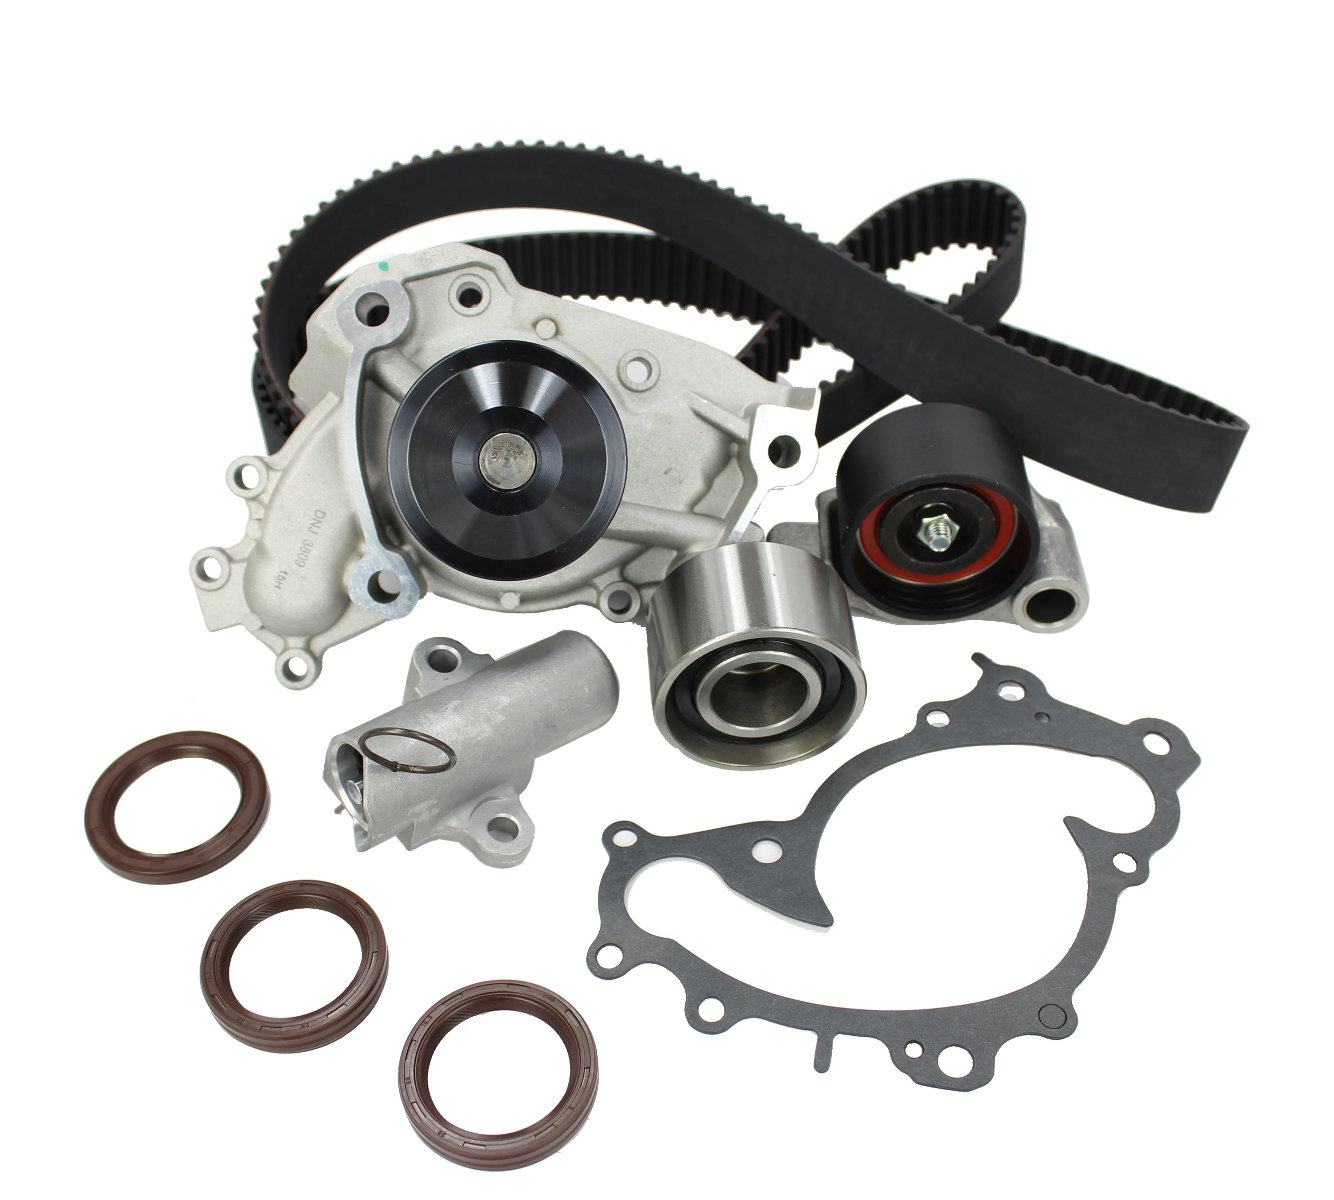 Timing Belt Kit >> Details About Dnj Engine Components Timing Belt Kit With Water Pump Tbk960awp